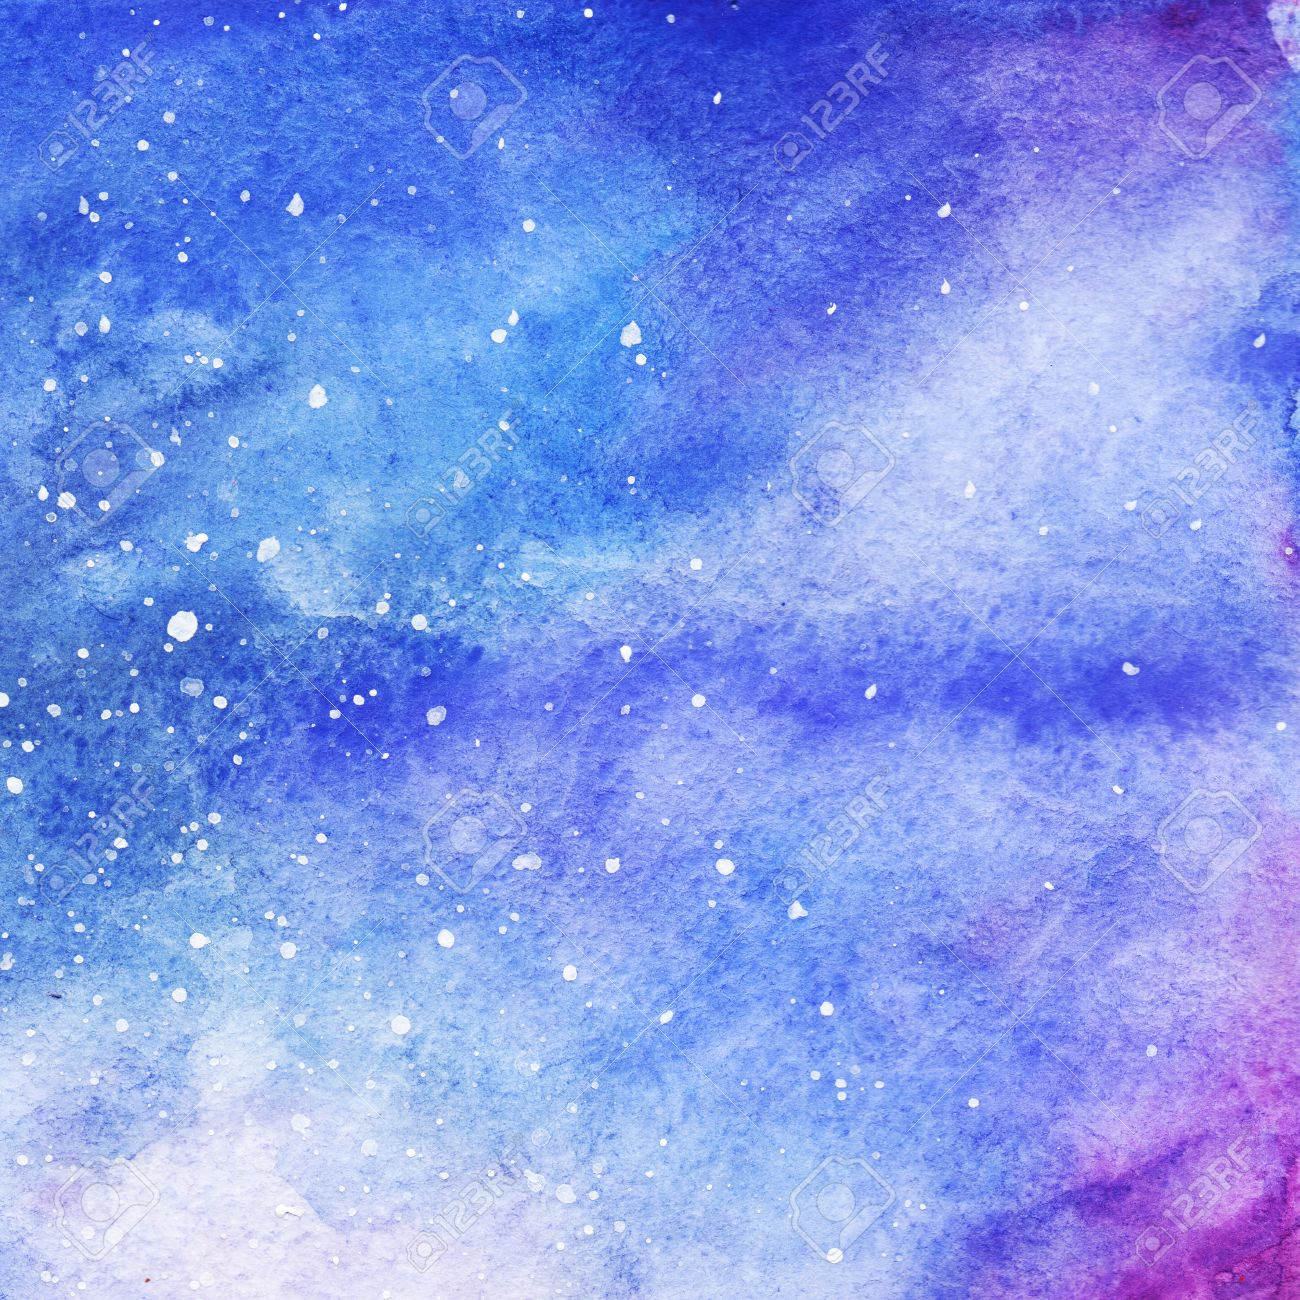 background - 61157208-watercolor-colorful-starry-space-galaxy-nebula-background-1